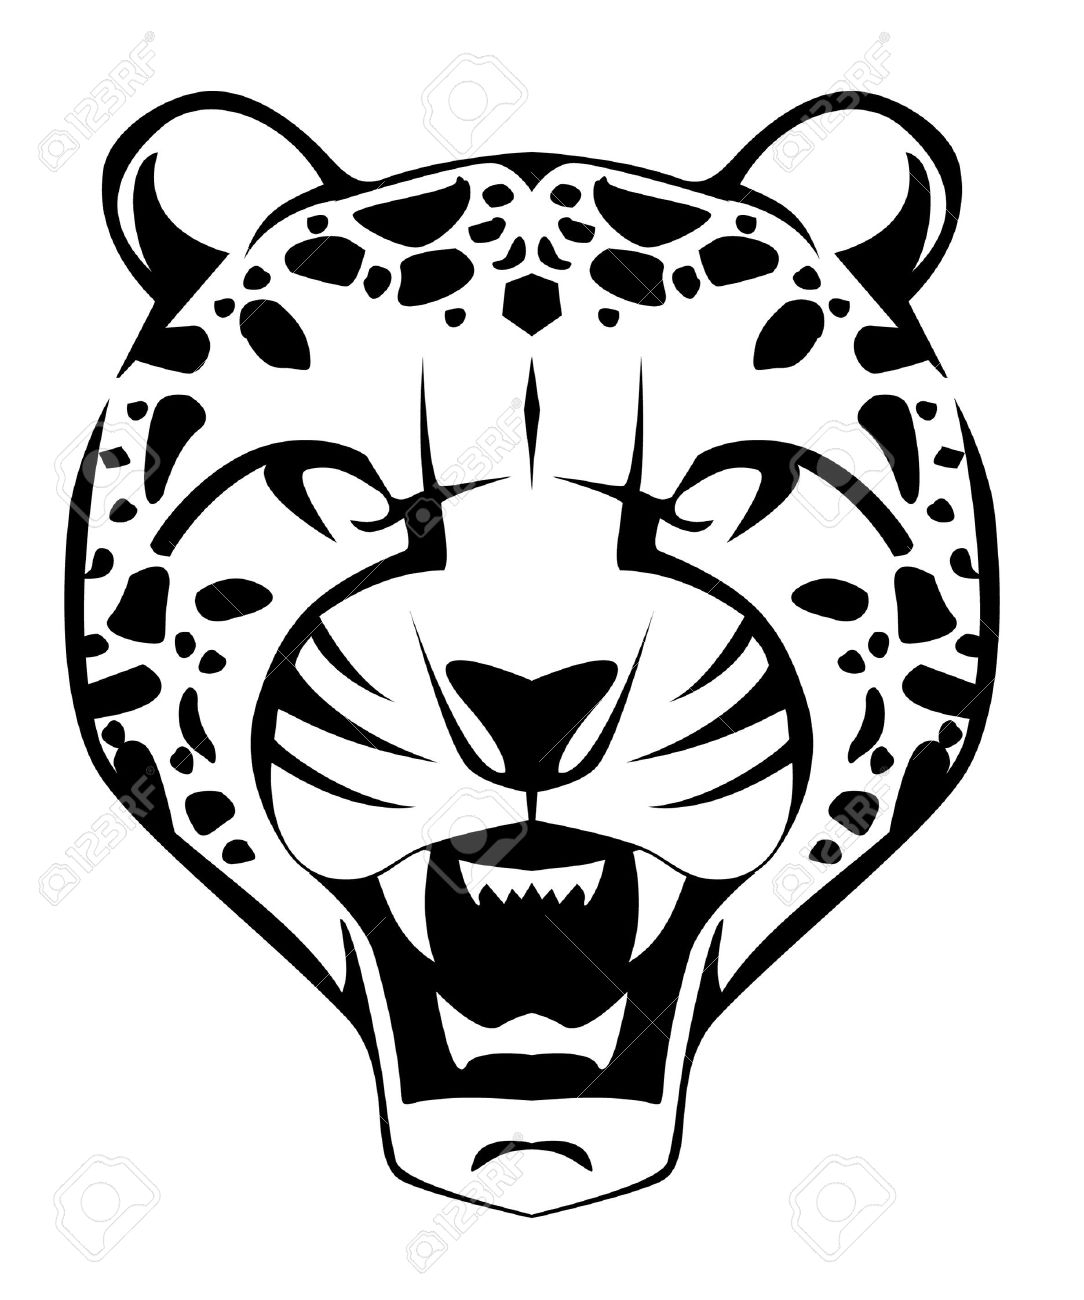 how to draw a realistic cheetah step by step easy cheetah drawing at getdrawings free download to how step realistic step a draw by cheetah